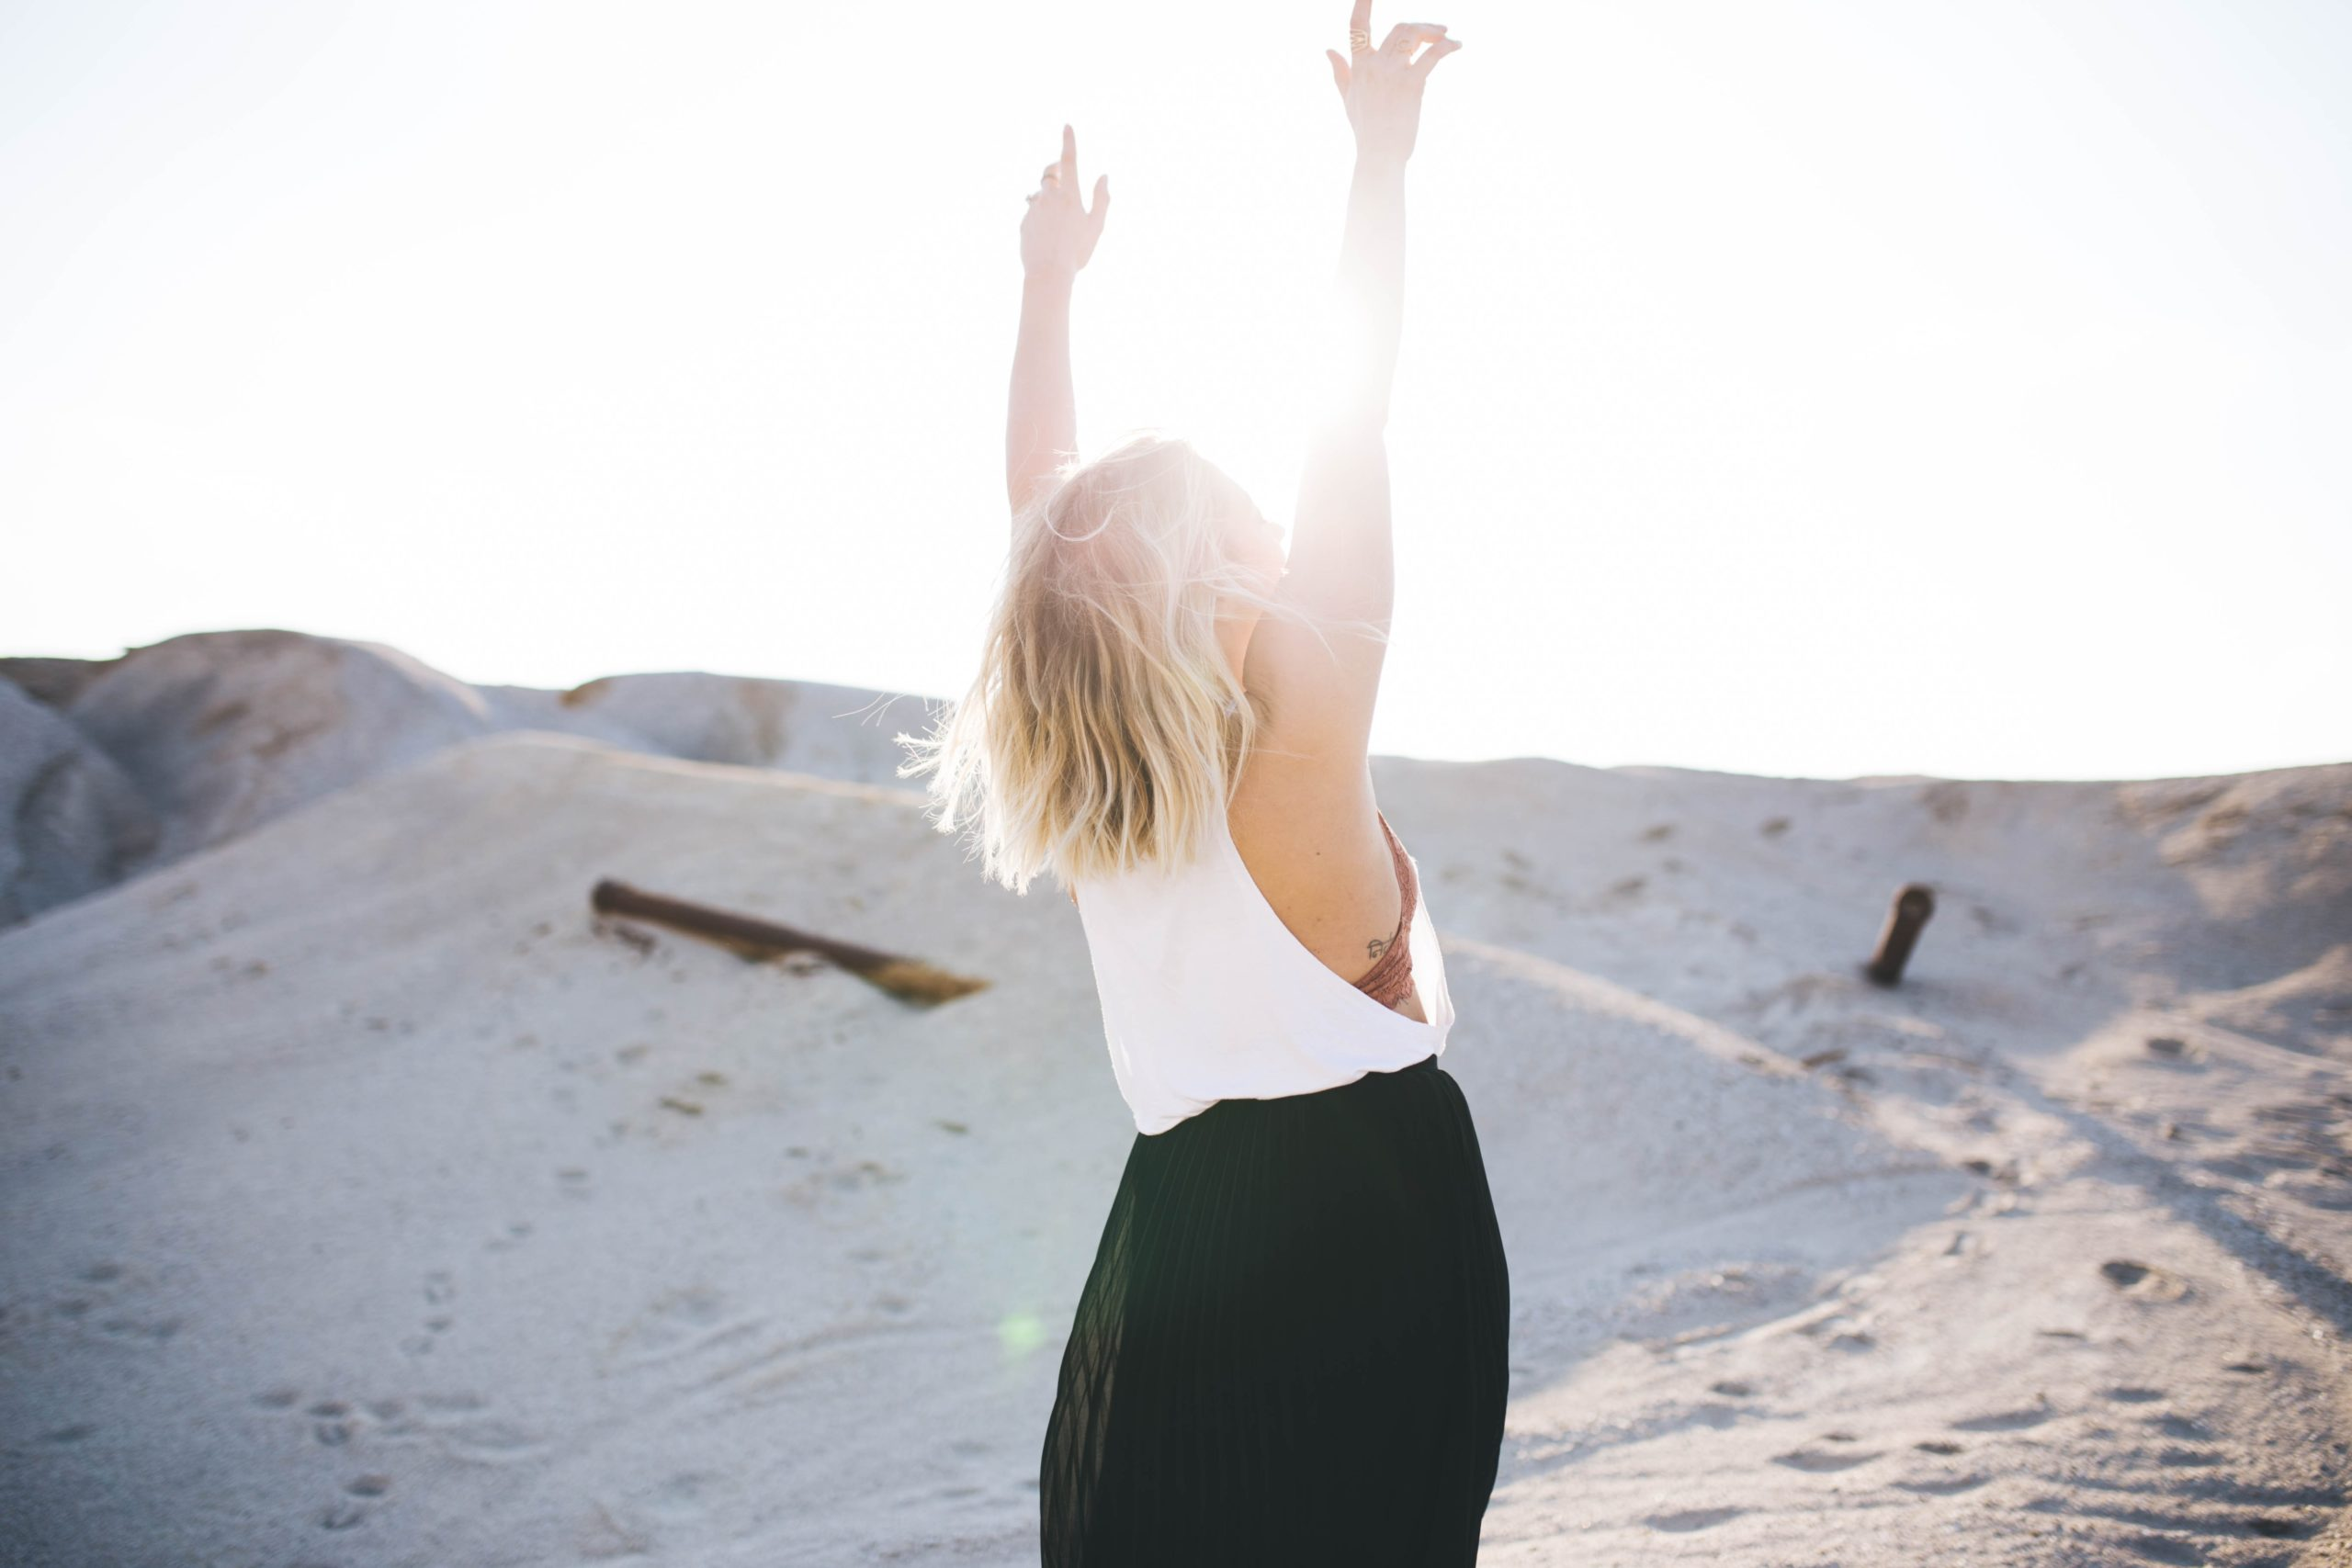 Women at the beach with sun shining through her upstretched arms